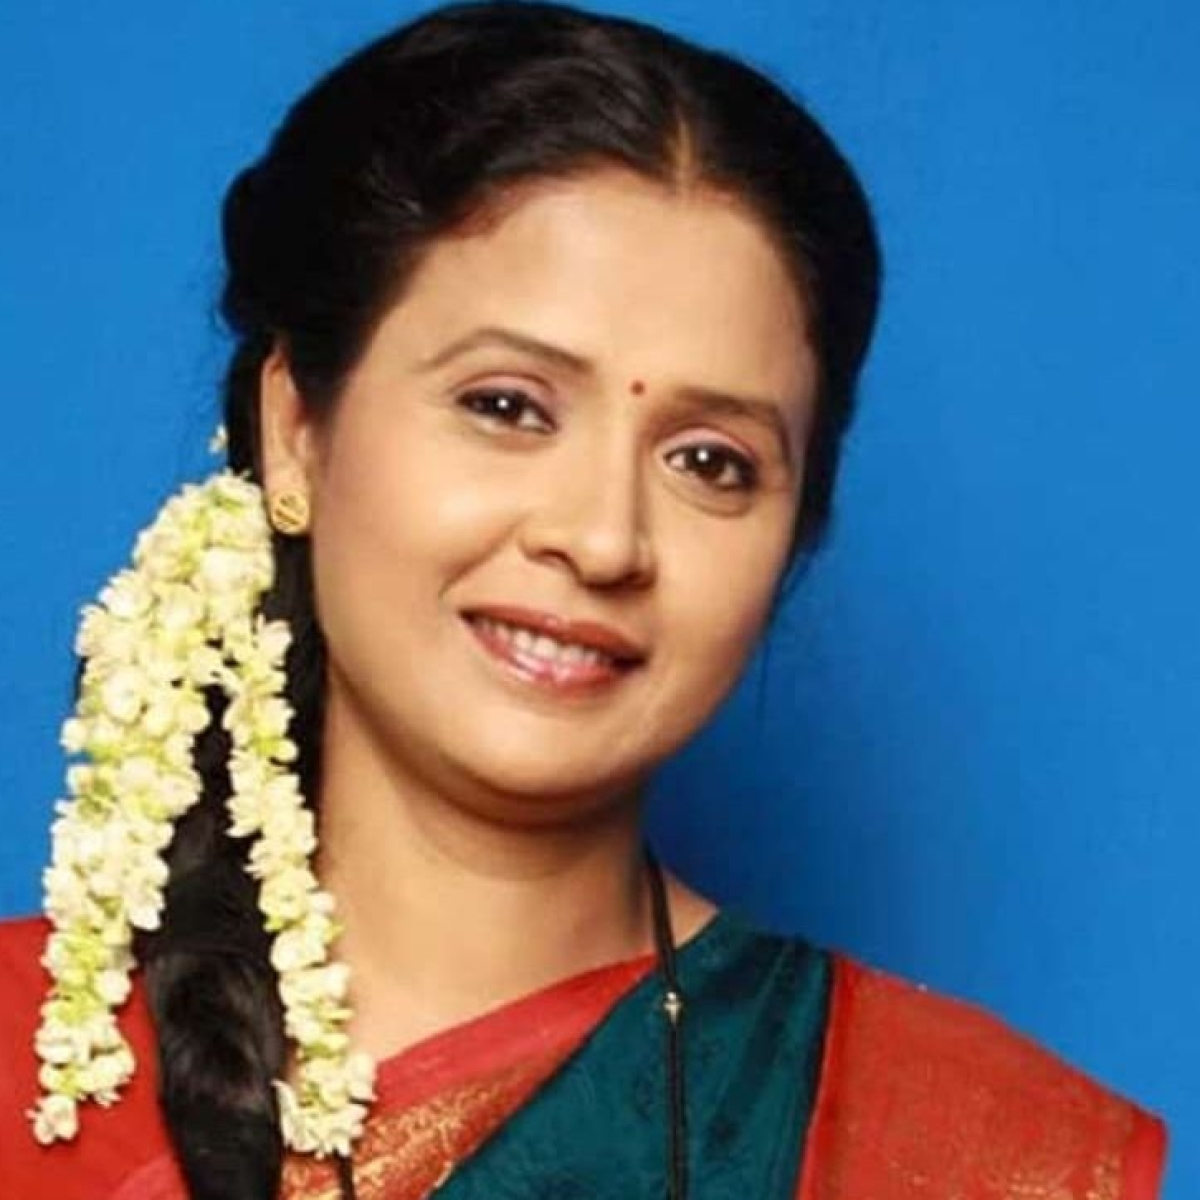 'Chhichhore' actress Abhilasha Patil, 47, dies due to COVID-19 complications